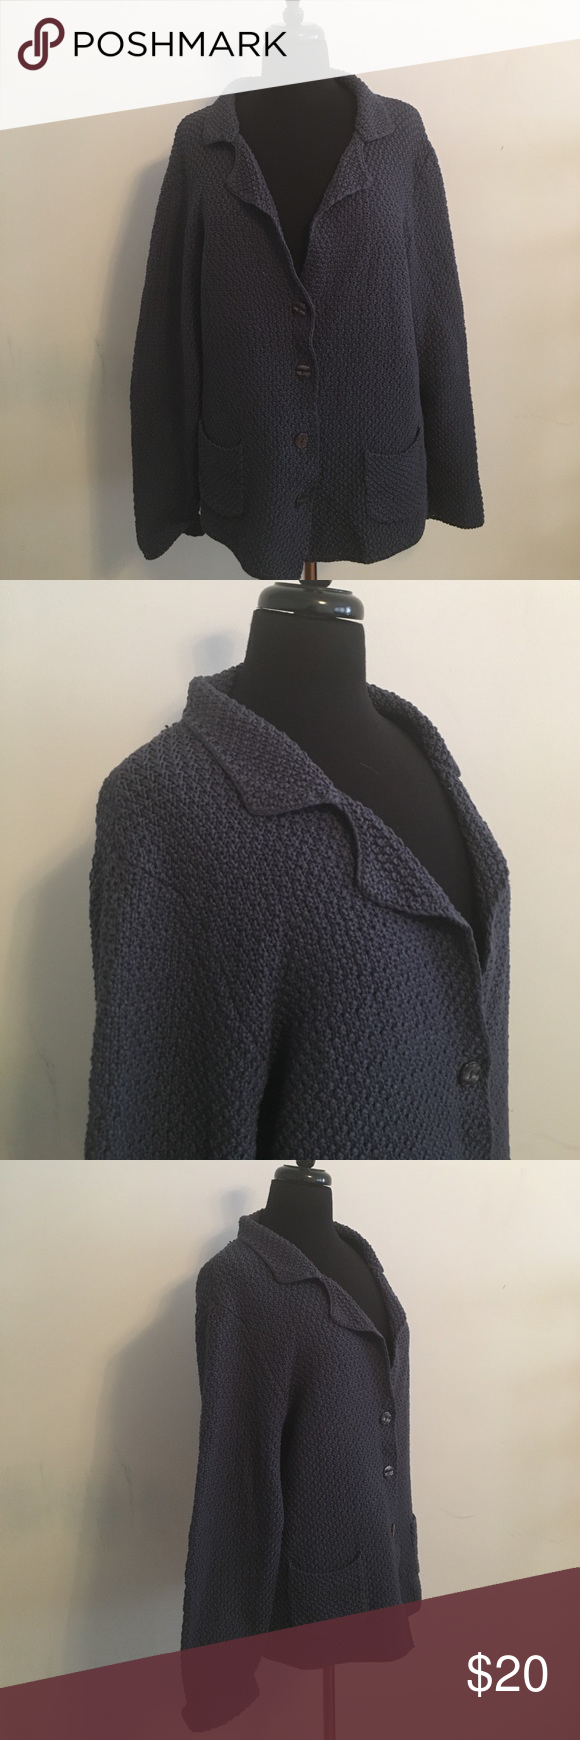 Boden Navy Sweater Bust: 46 inches Length: 27 inches Sleeve: 24 inches 100% Cotton Boden Sweaters Cardigans